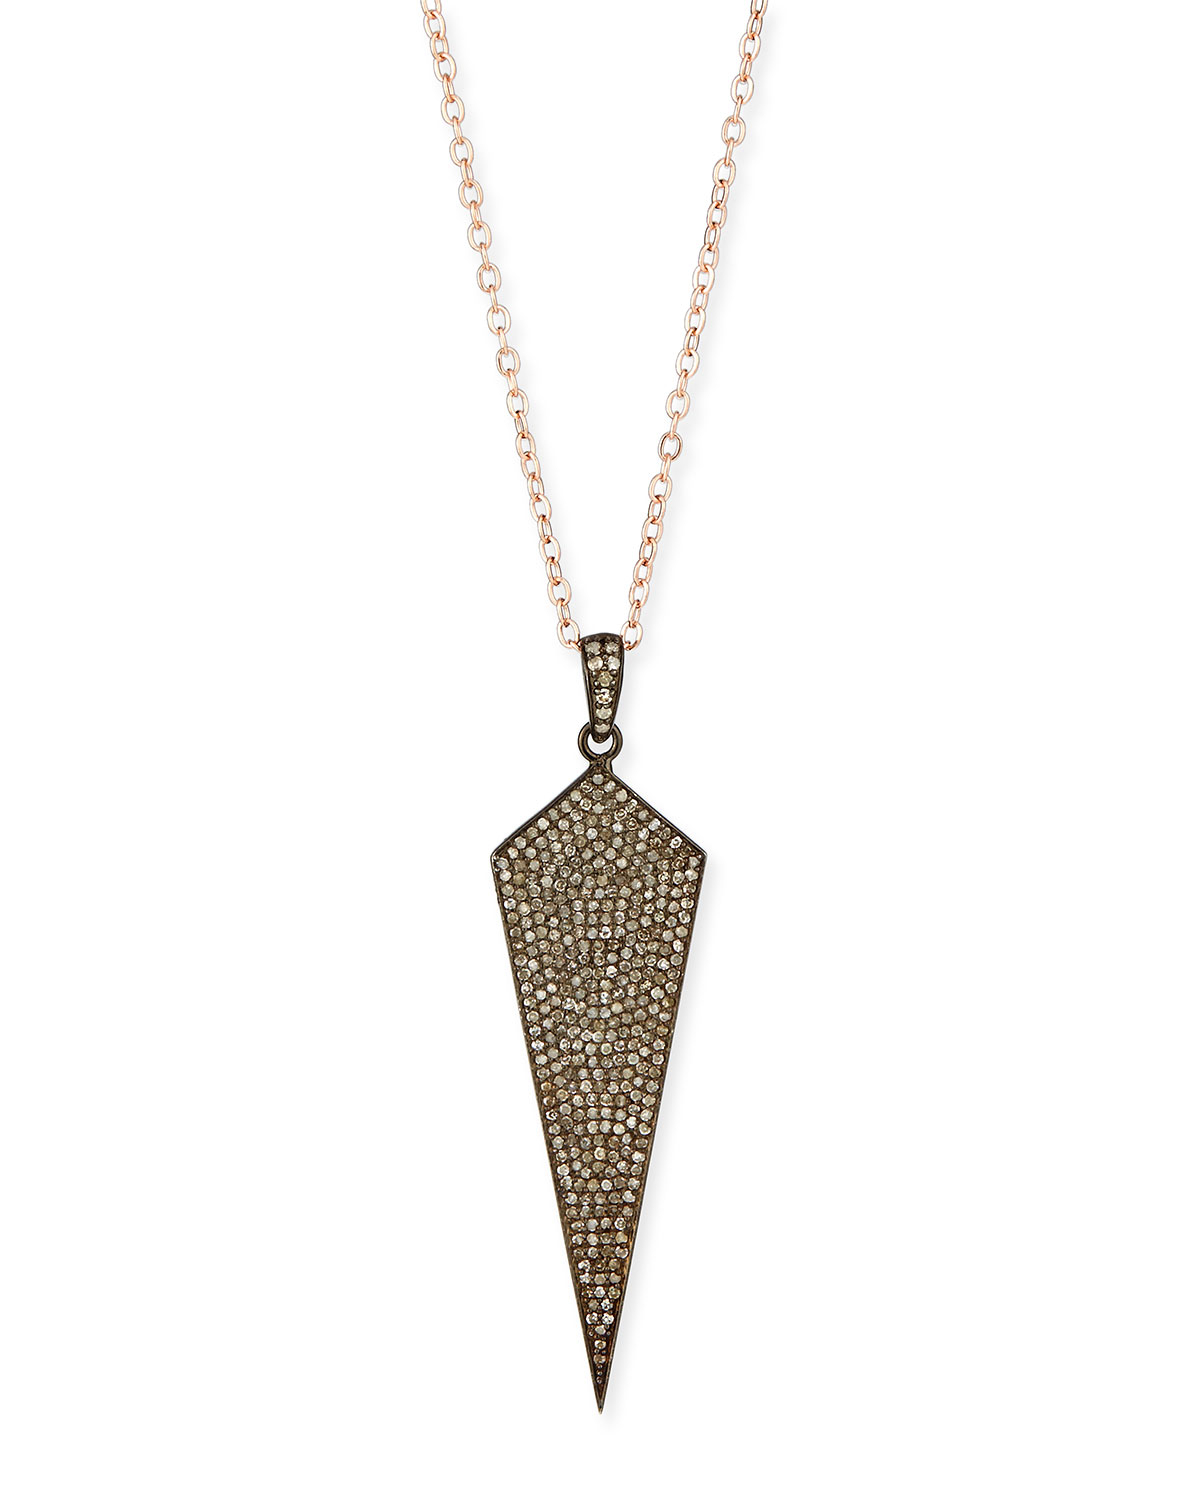 Lyst  Siena Jewelry Wide Diamond Dagger Necklace With. Necklace. Flower Lockets. Mixed Gold Engagement Rings. 4000 Dollar Engagement Rings. Square Cross Pendant. Amber Jewelry. Simple Pendant. Tanishq Engagement Rings